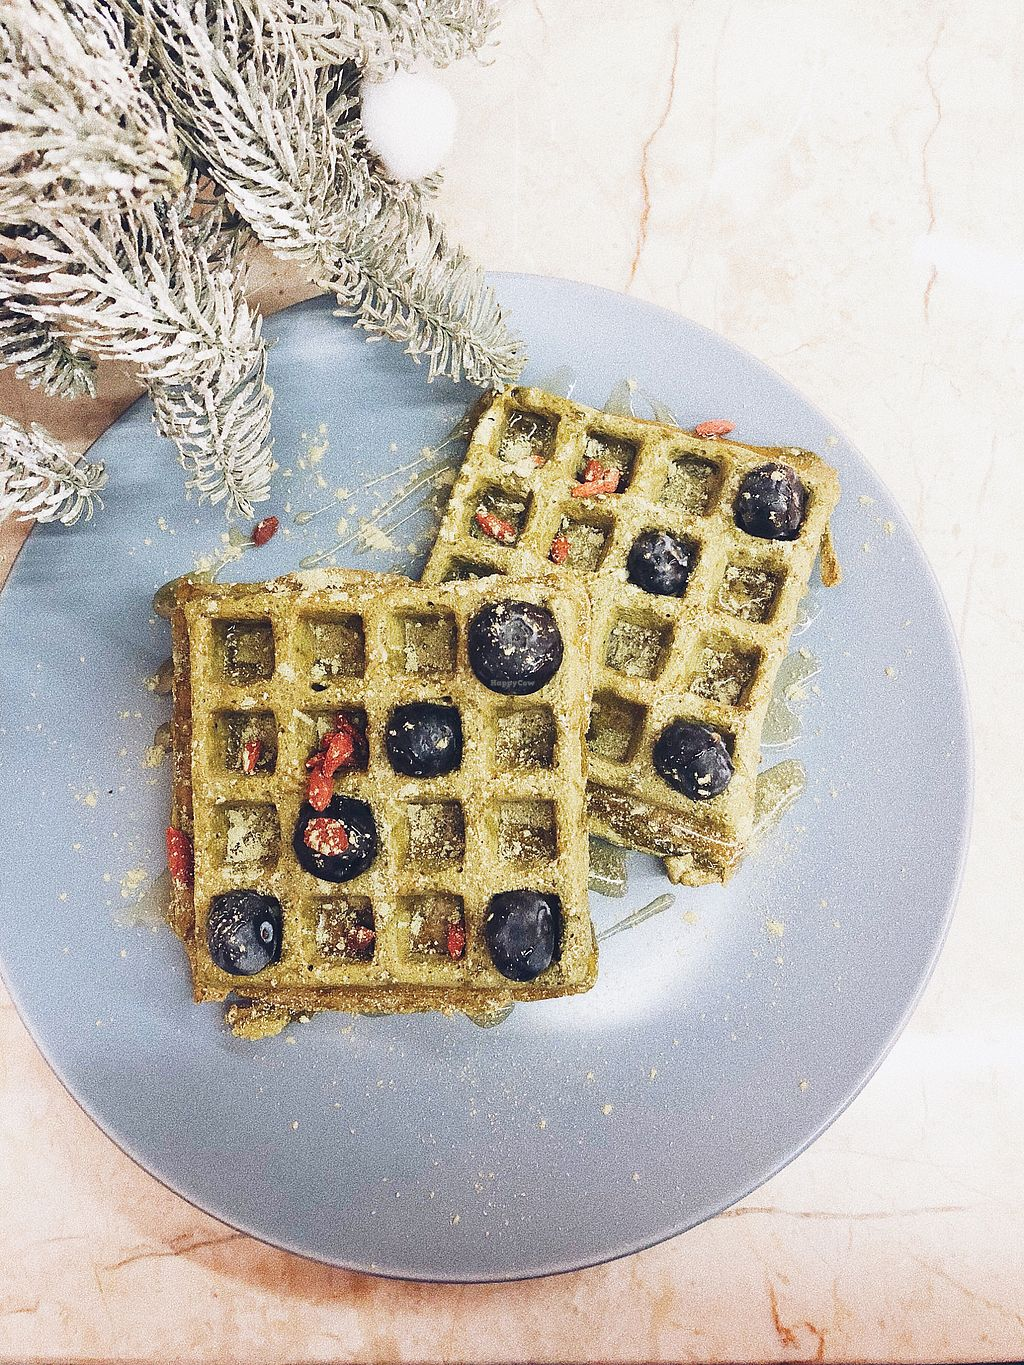 """Photo of SML Deli Coffee Shop  by <a href=""""/members/profile/Evgenia"""">Evgenia</a> <br/>Matcha waffles  <br/> January 9, 2018  - <a href='/contact/abuse/image/107273/344738'>Report</a>"""